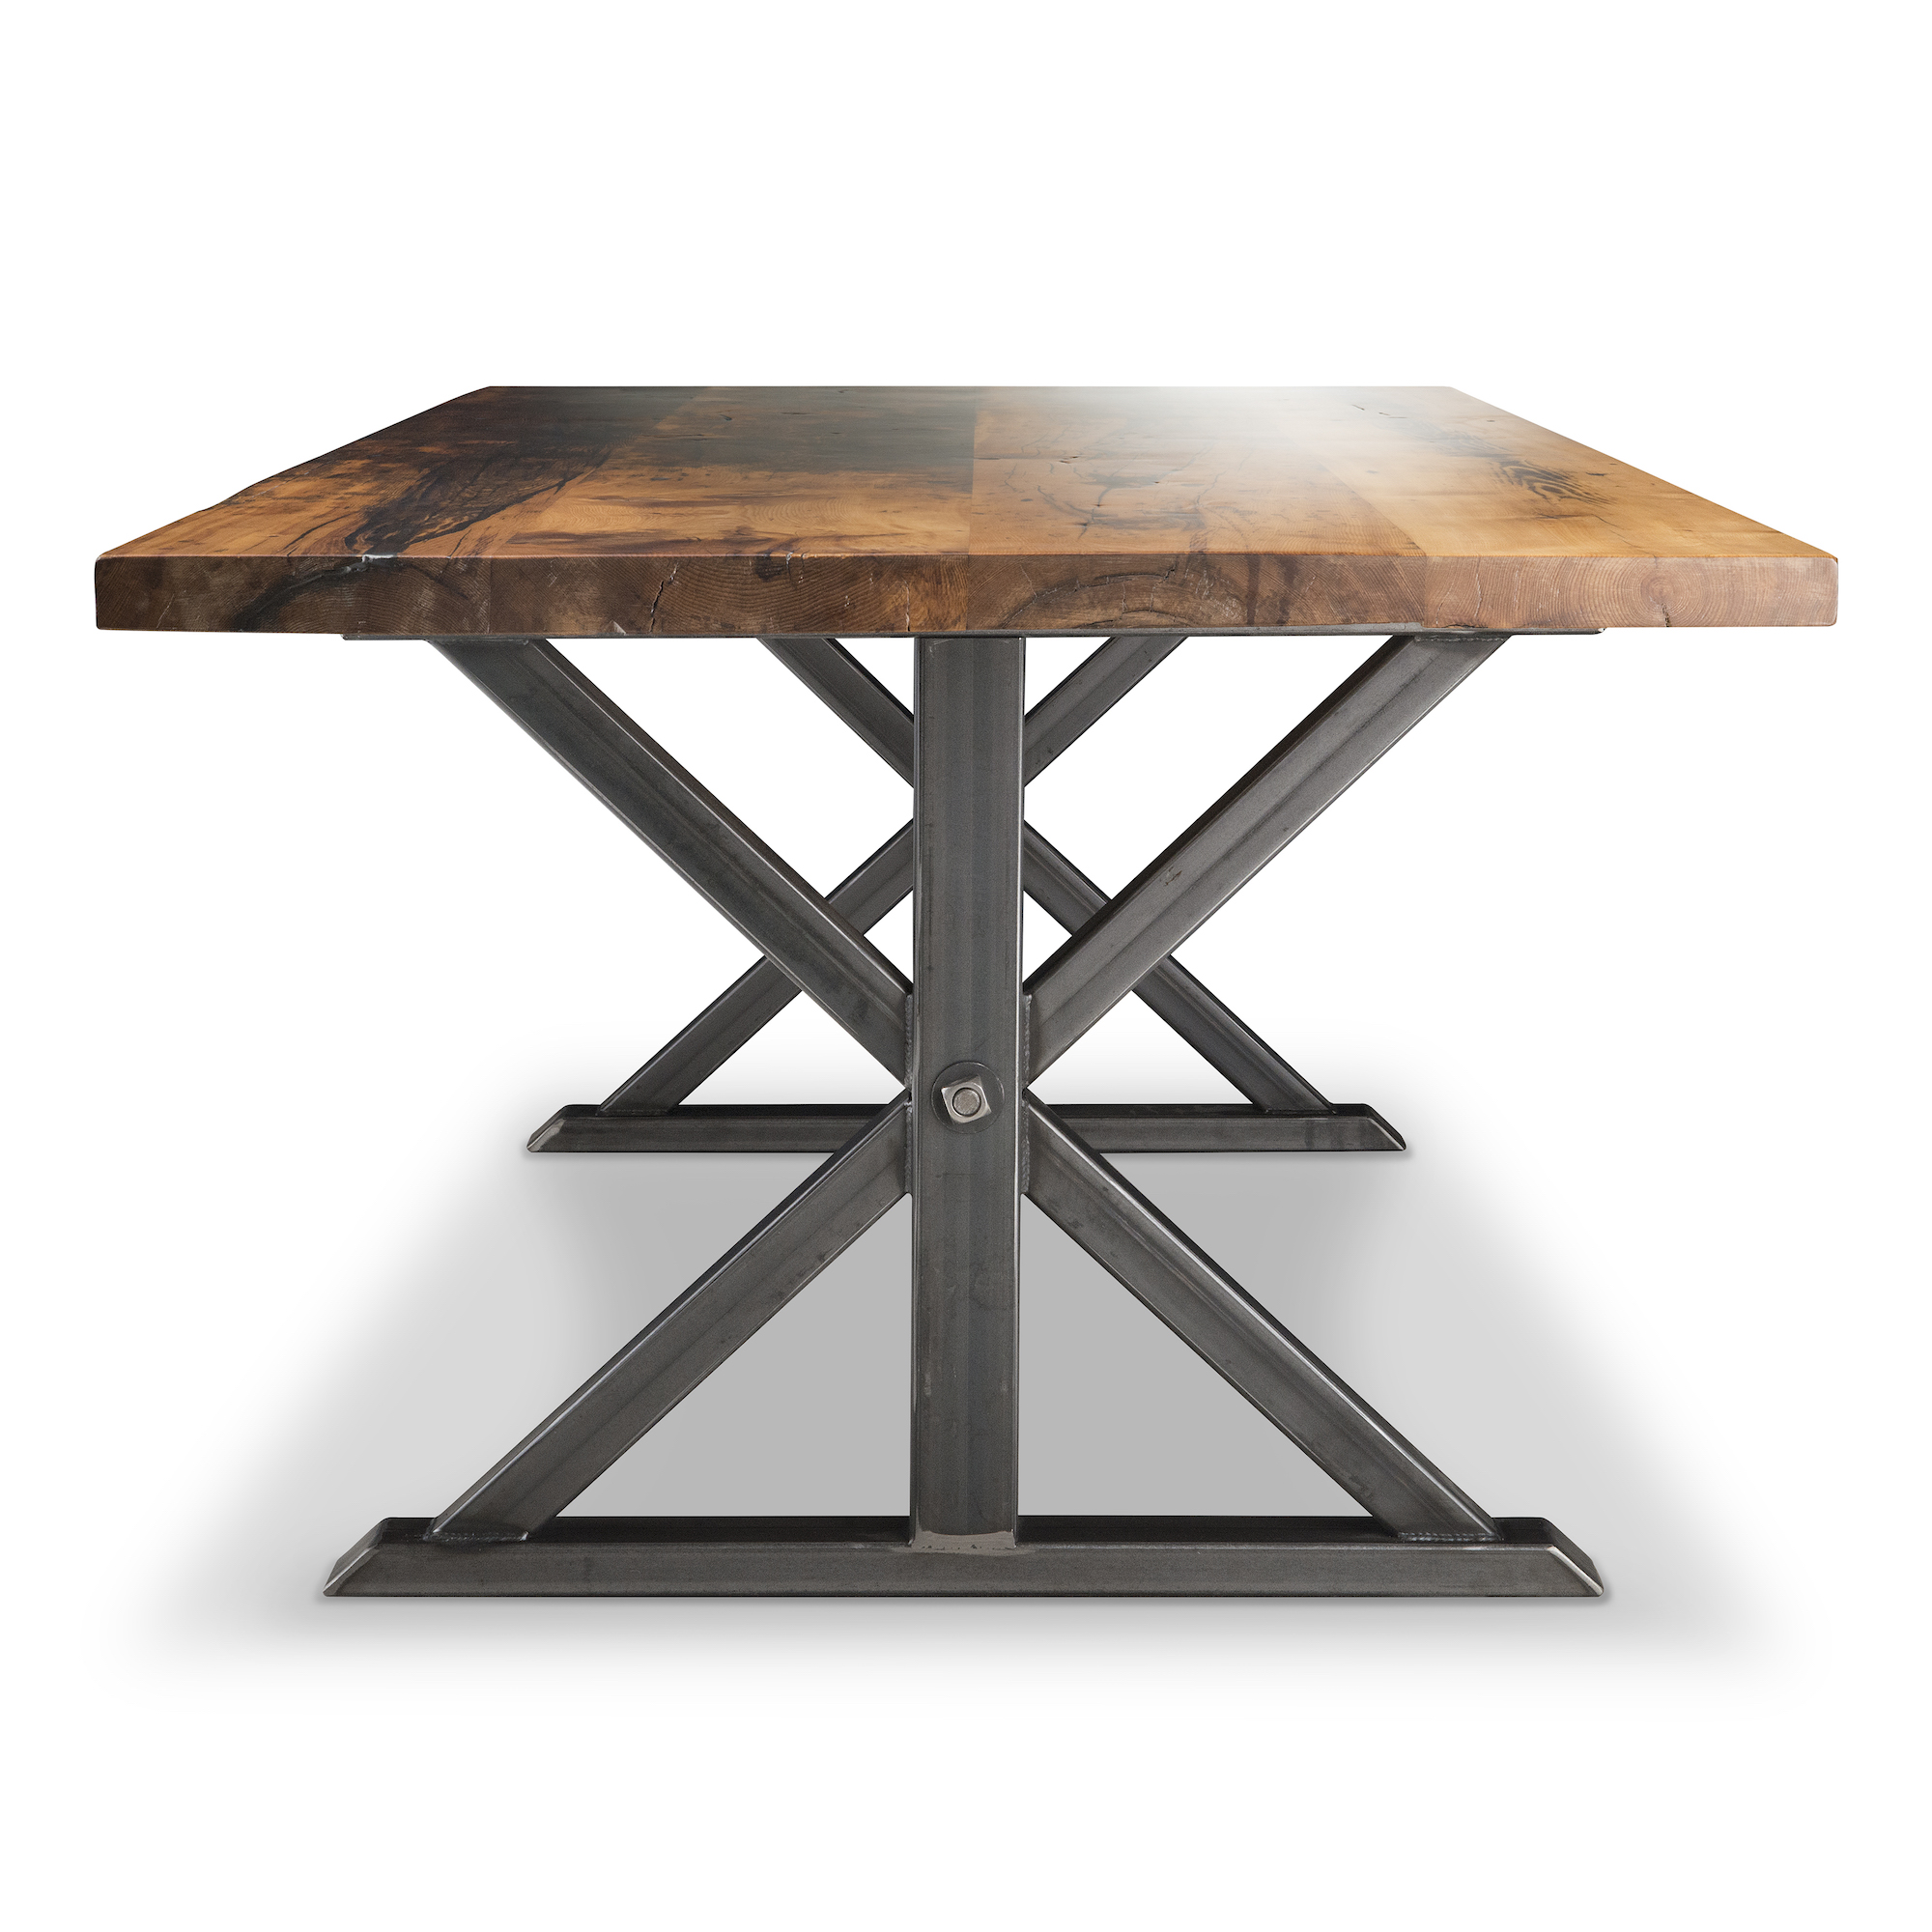 Jackson_Double_Ped_Table_End-1-1-1-1.jpg